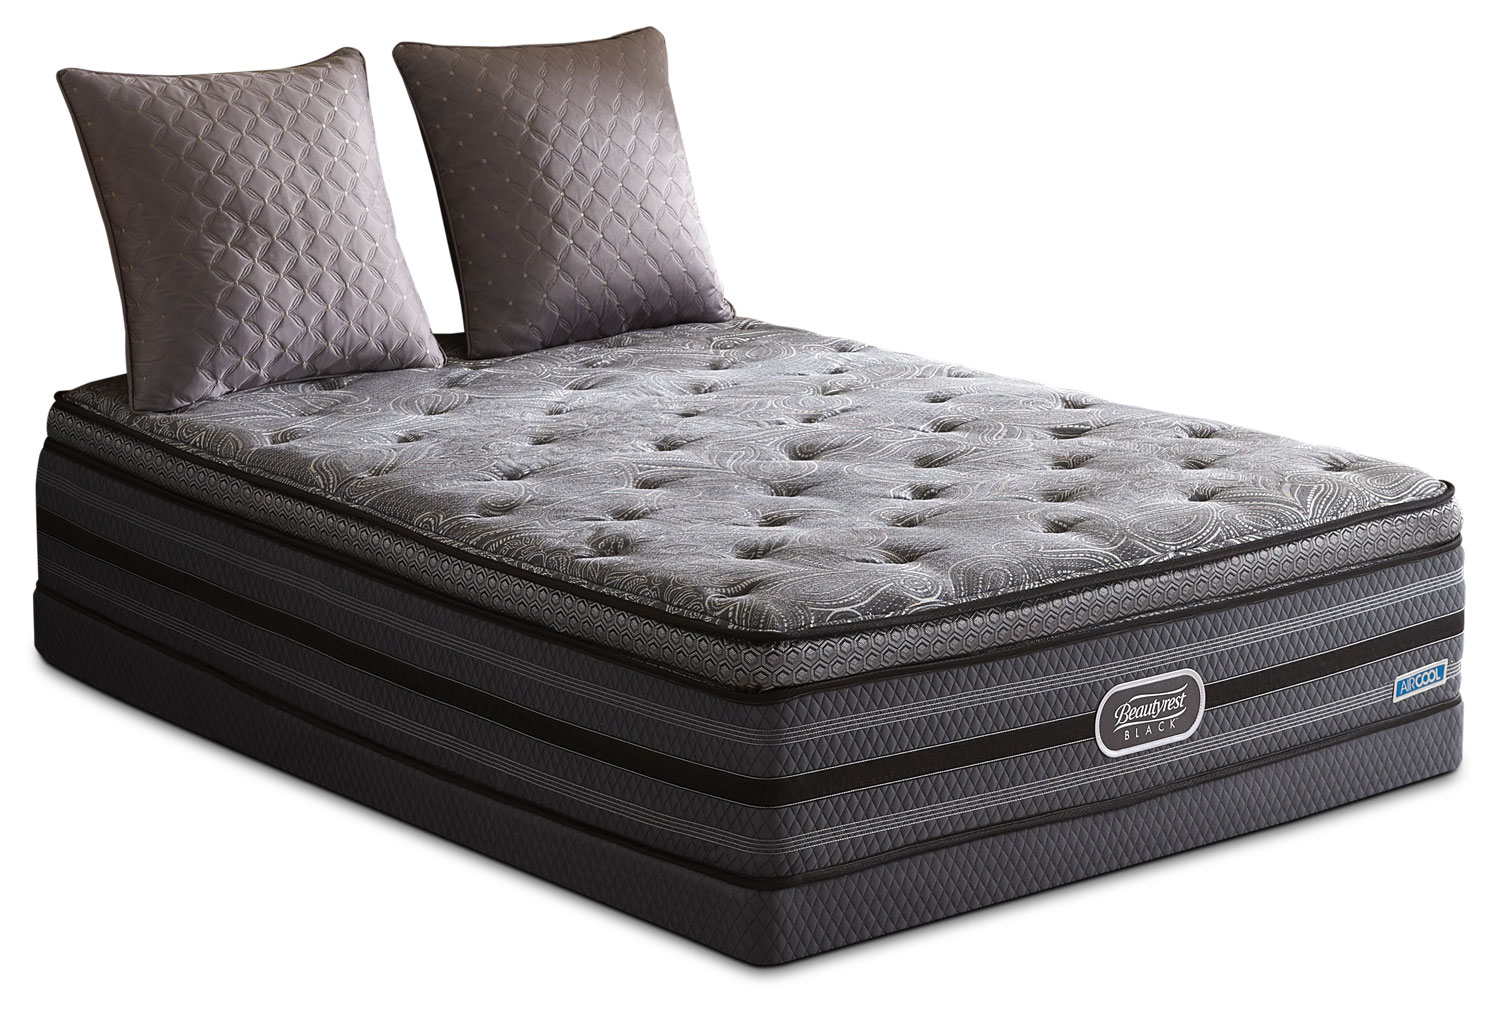 Beautyrest Black Legendary Comfort-Top Luxury Firm King Mattress Set